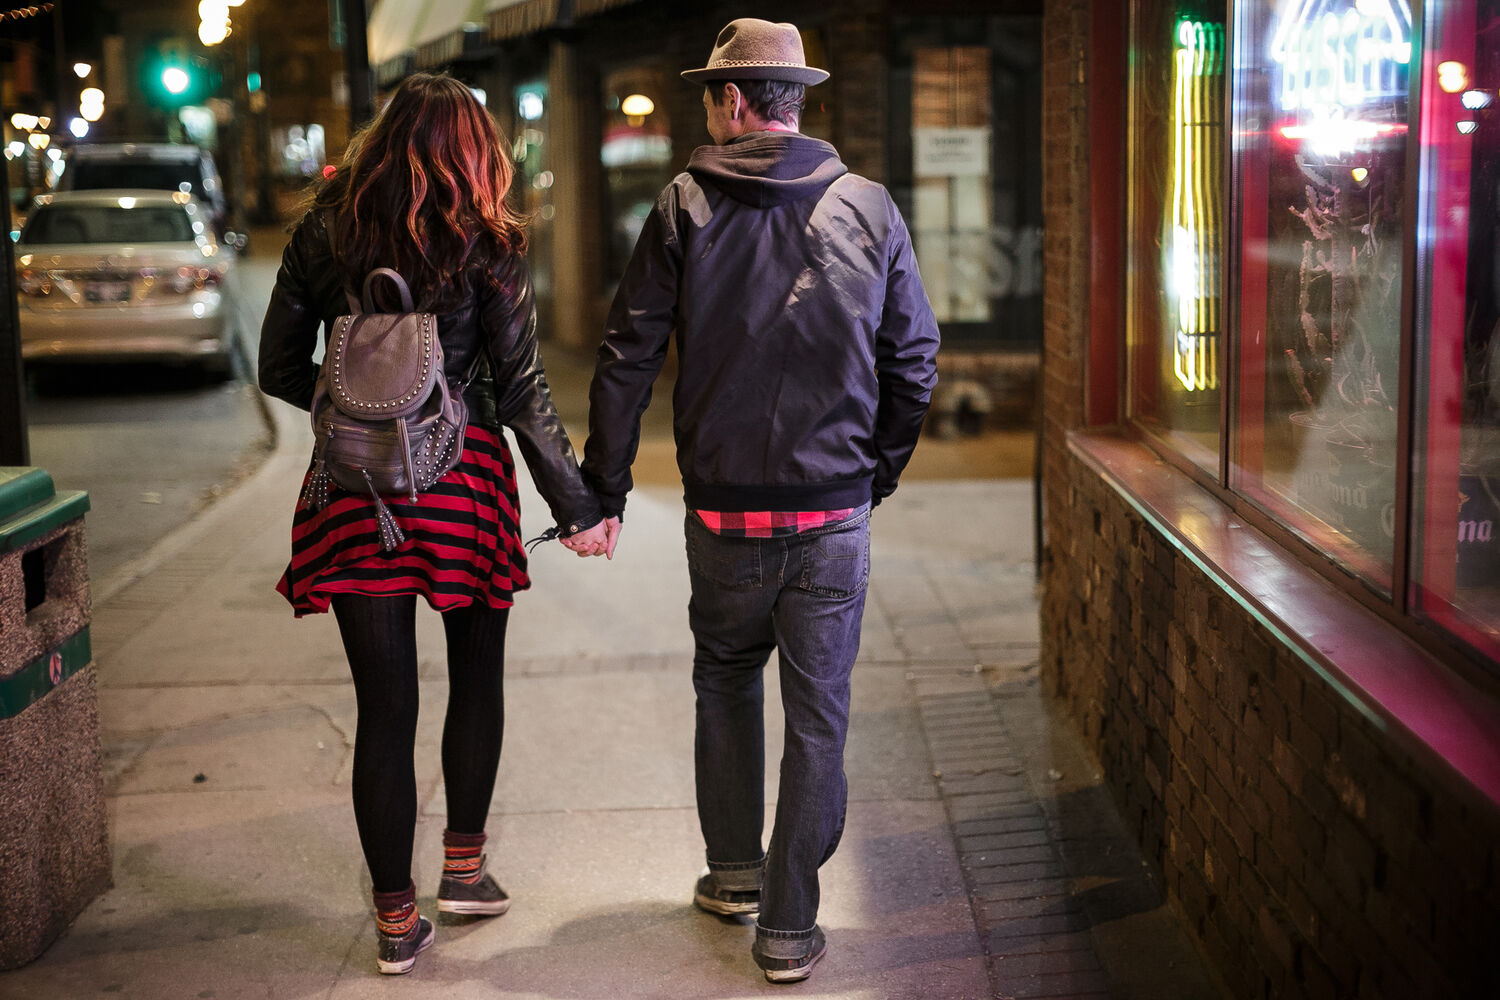 A good match. Doug and Hannah walk hand in hand down a neon Osborne Street. Day 10. (MELISSA TAIT / WINNIPEG FREE PRESS)